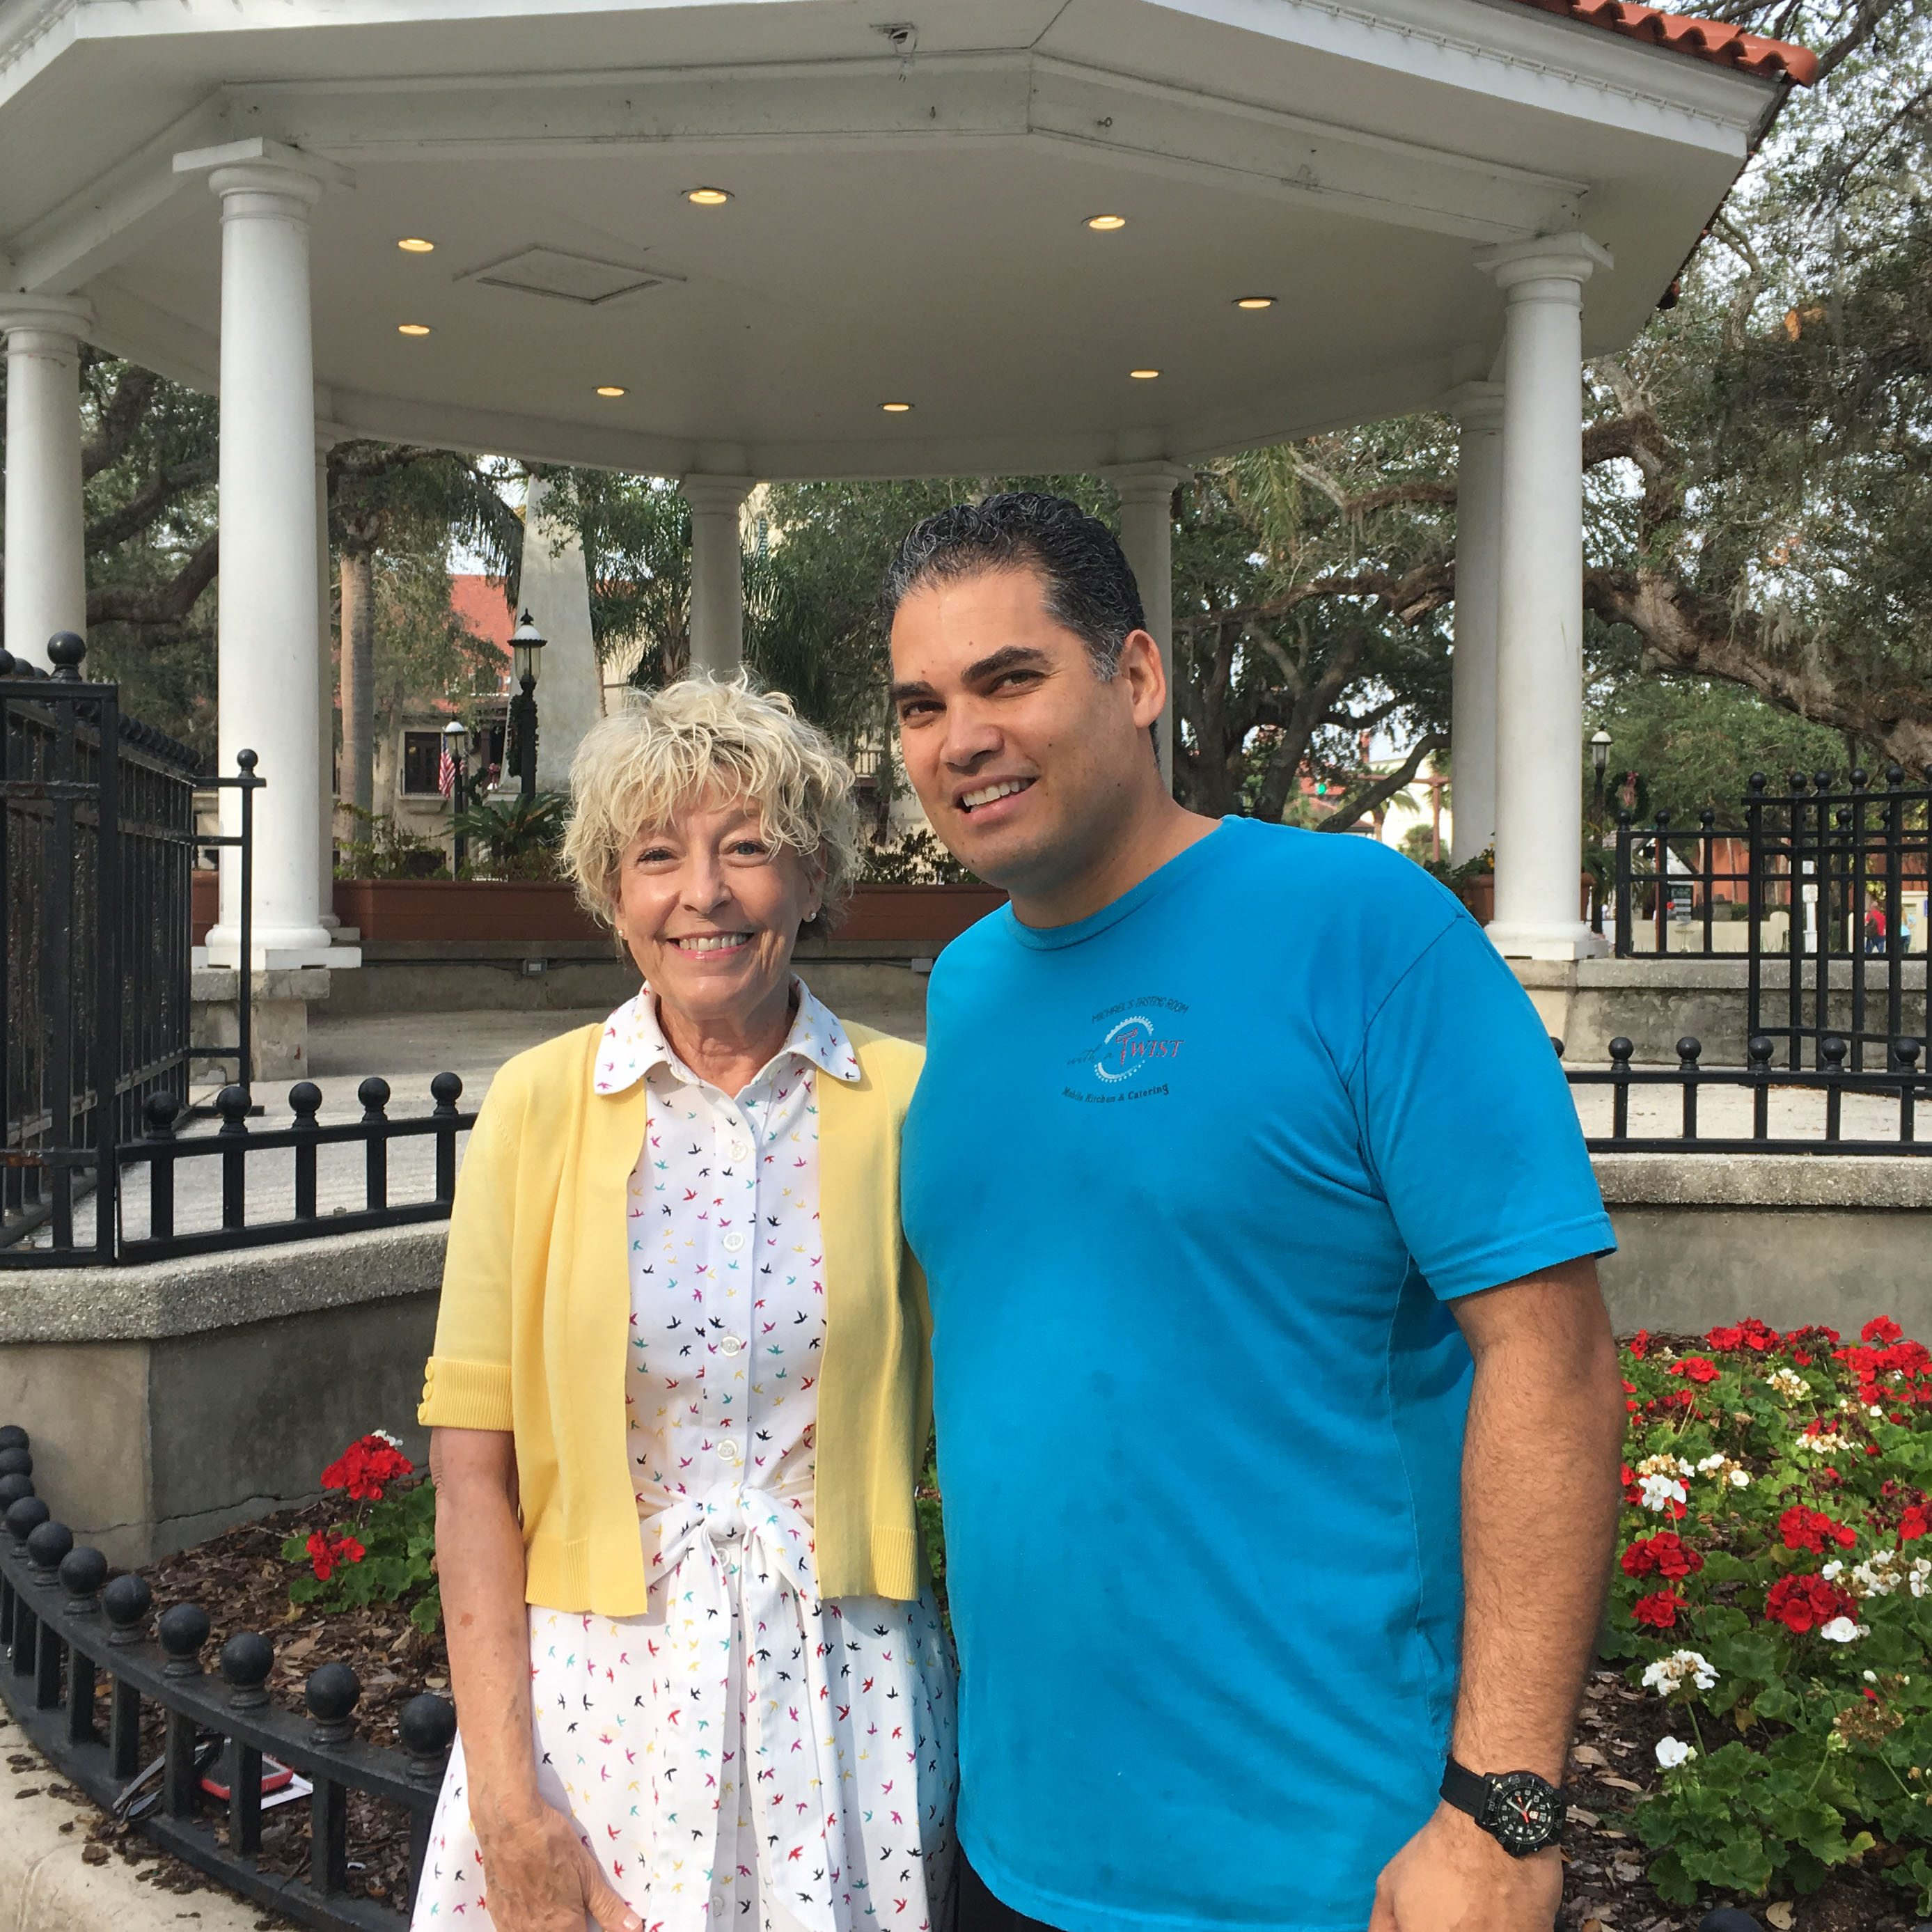 Wanda Bray and Chef Michael Lugo are named as the Nights of Lights honorees for the 24th season